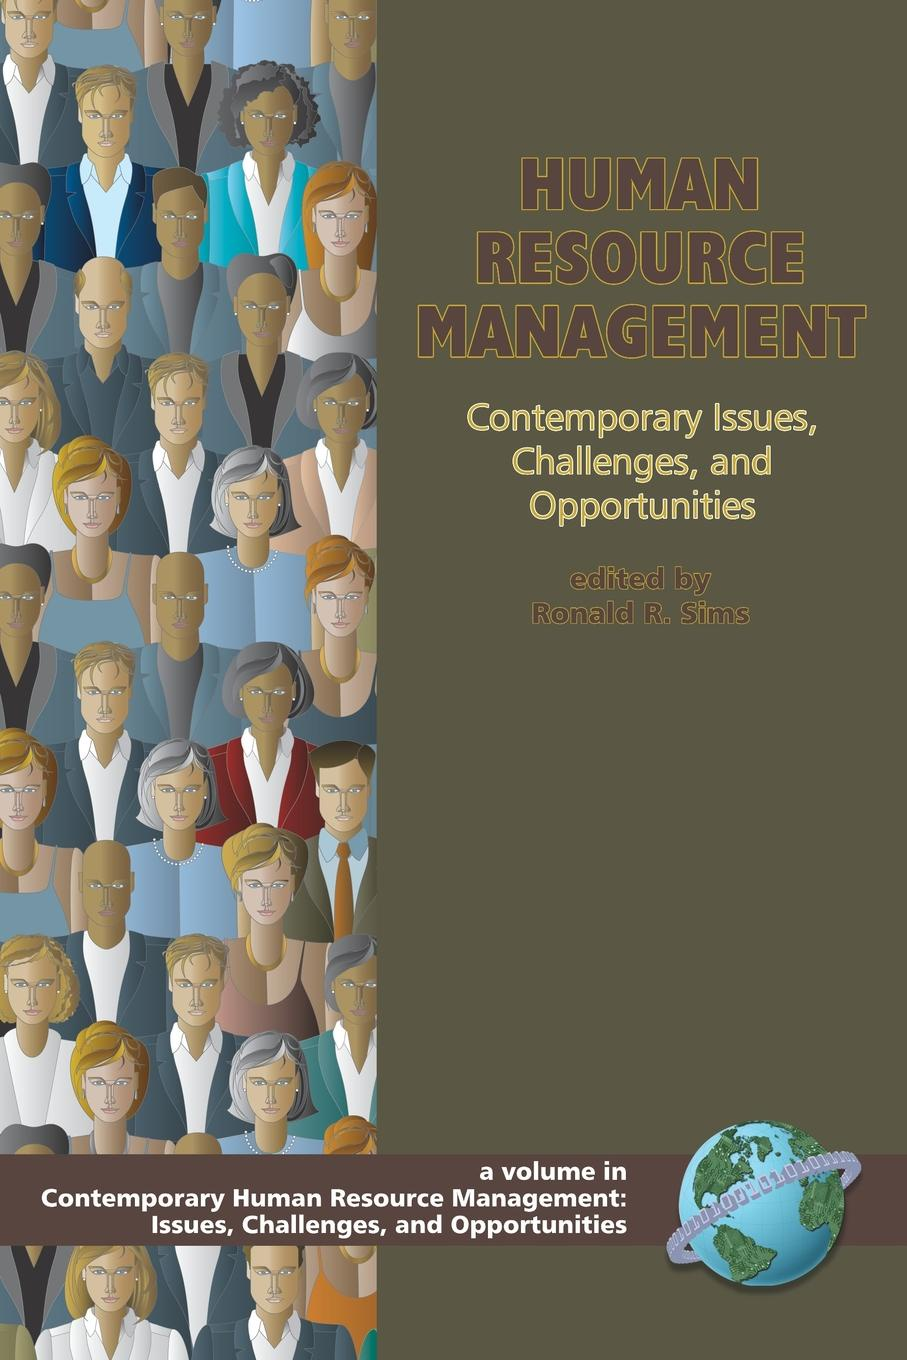 Human Resource Management. Contemporary Issues, Challenges, and Opportunities (PB) bevan s brinkley i bajorek z cooper c 21st century workforces and workplaces the challenges and opportunities for future work practices and labour markets